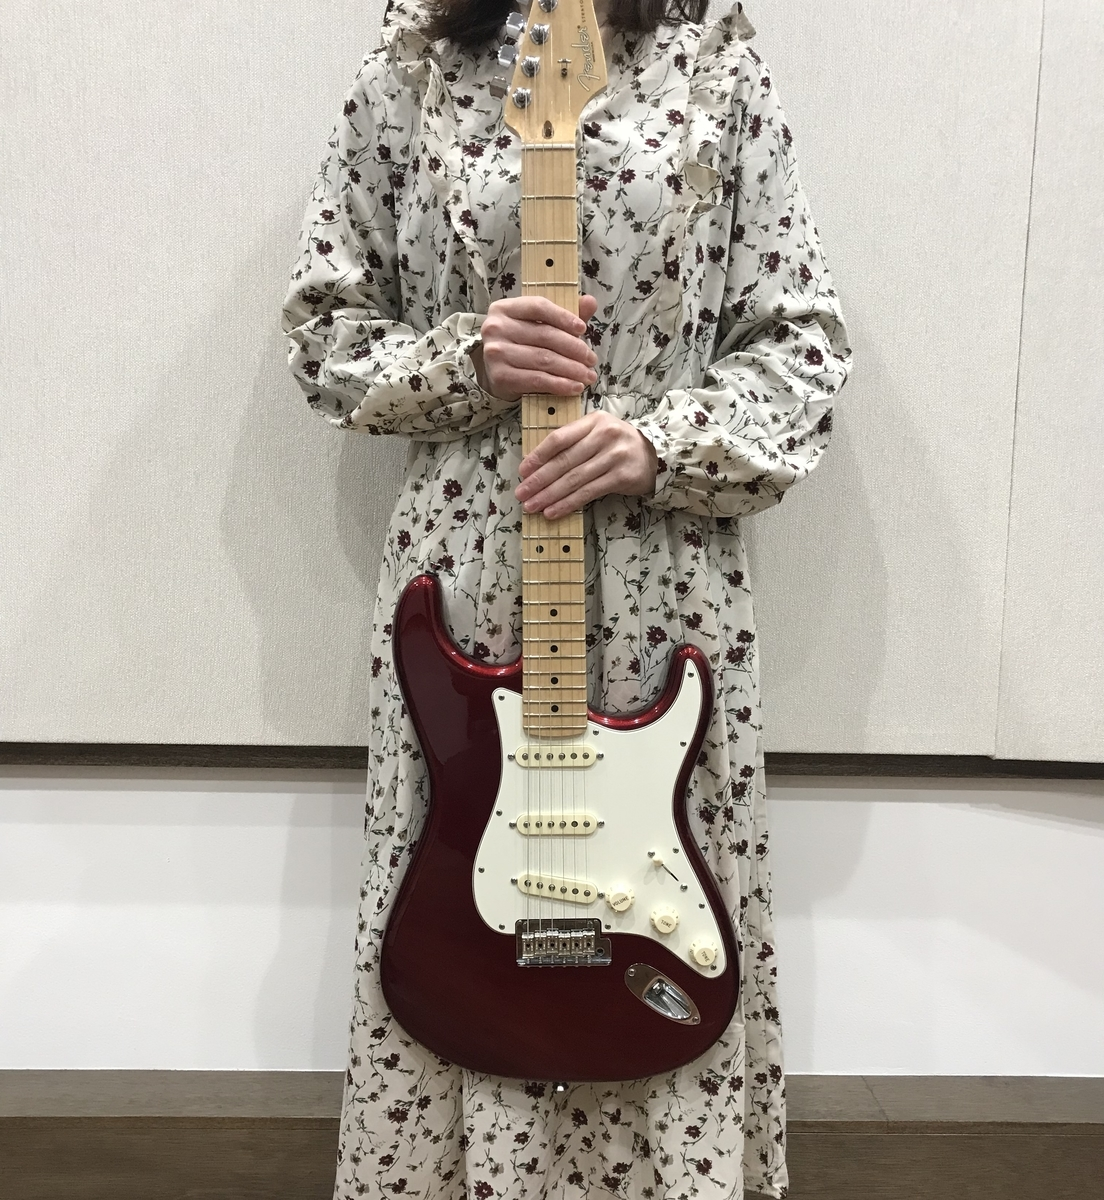 f:id:totalguitarmethod:20190410174054j:plain